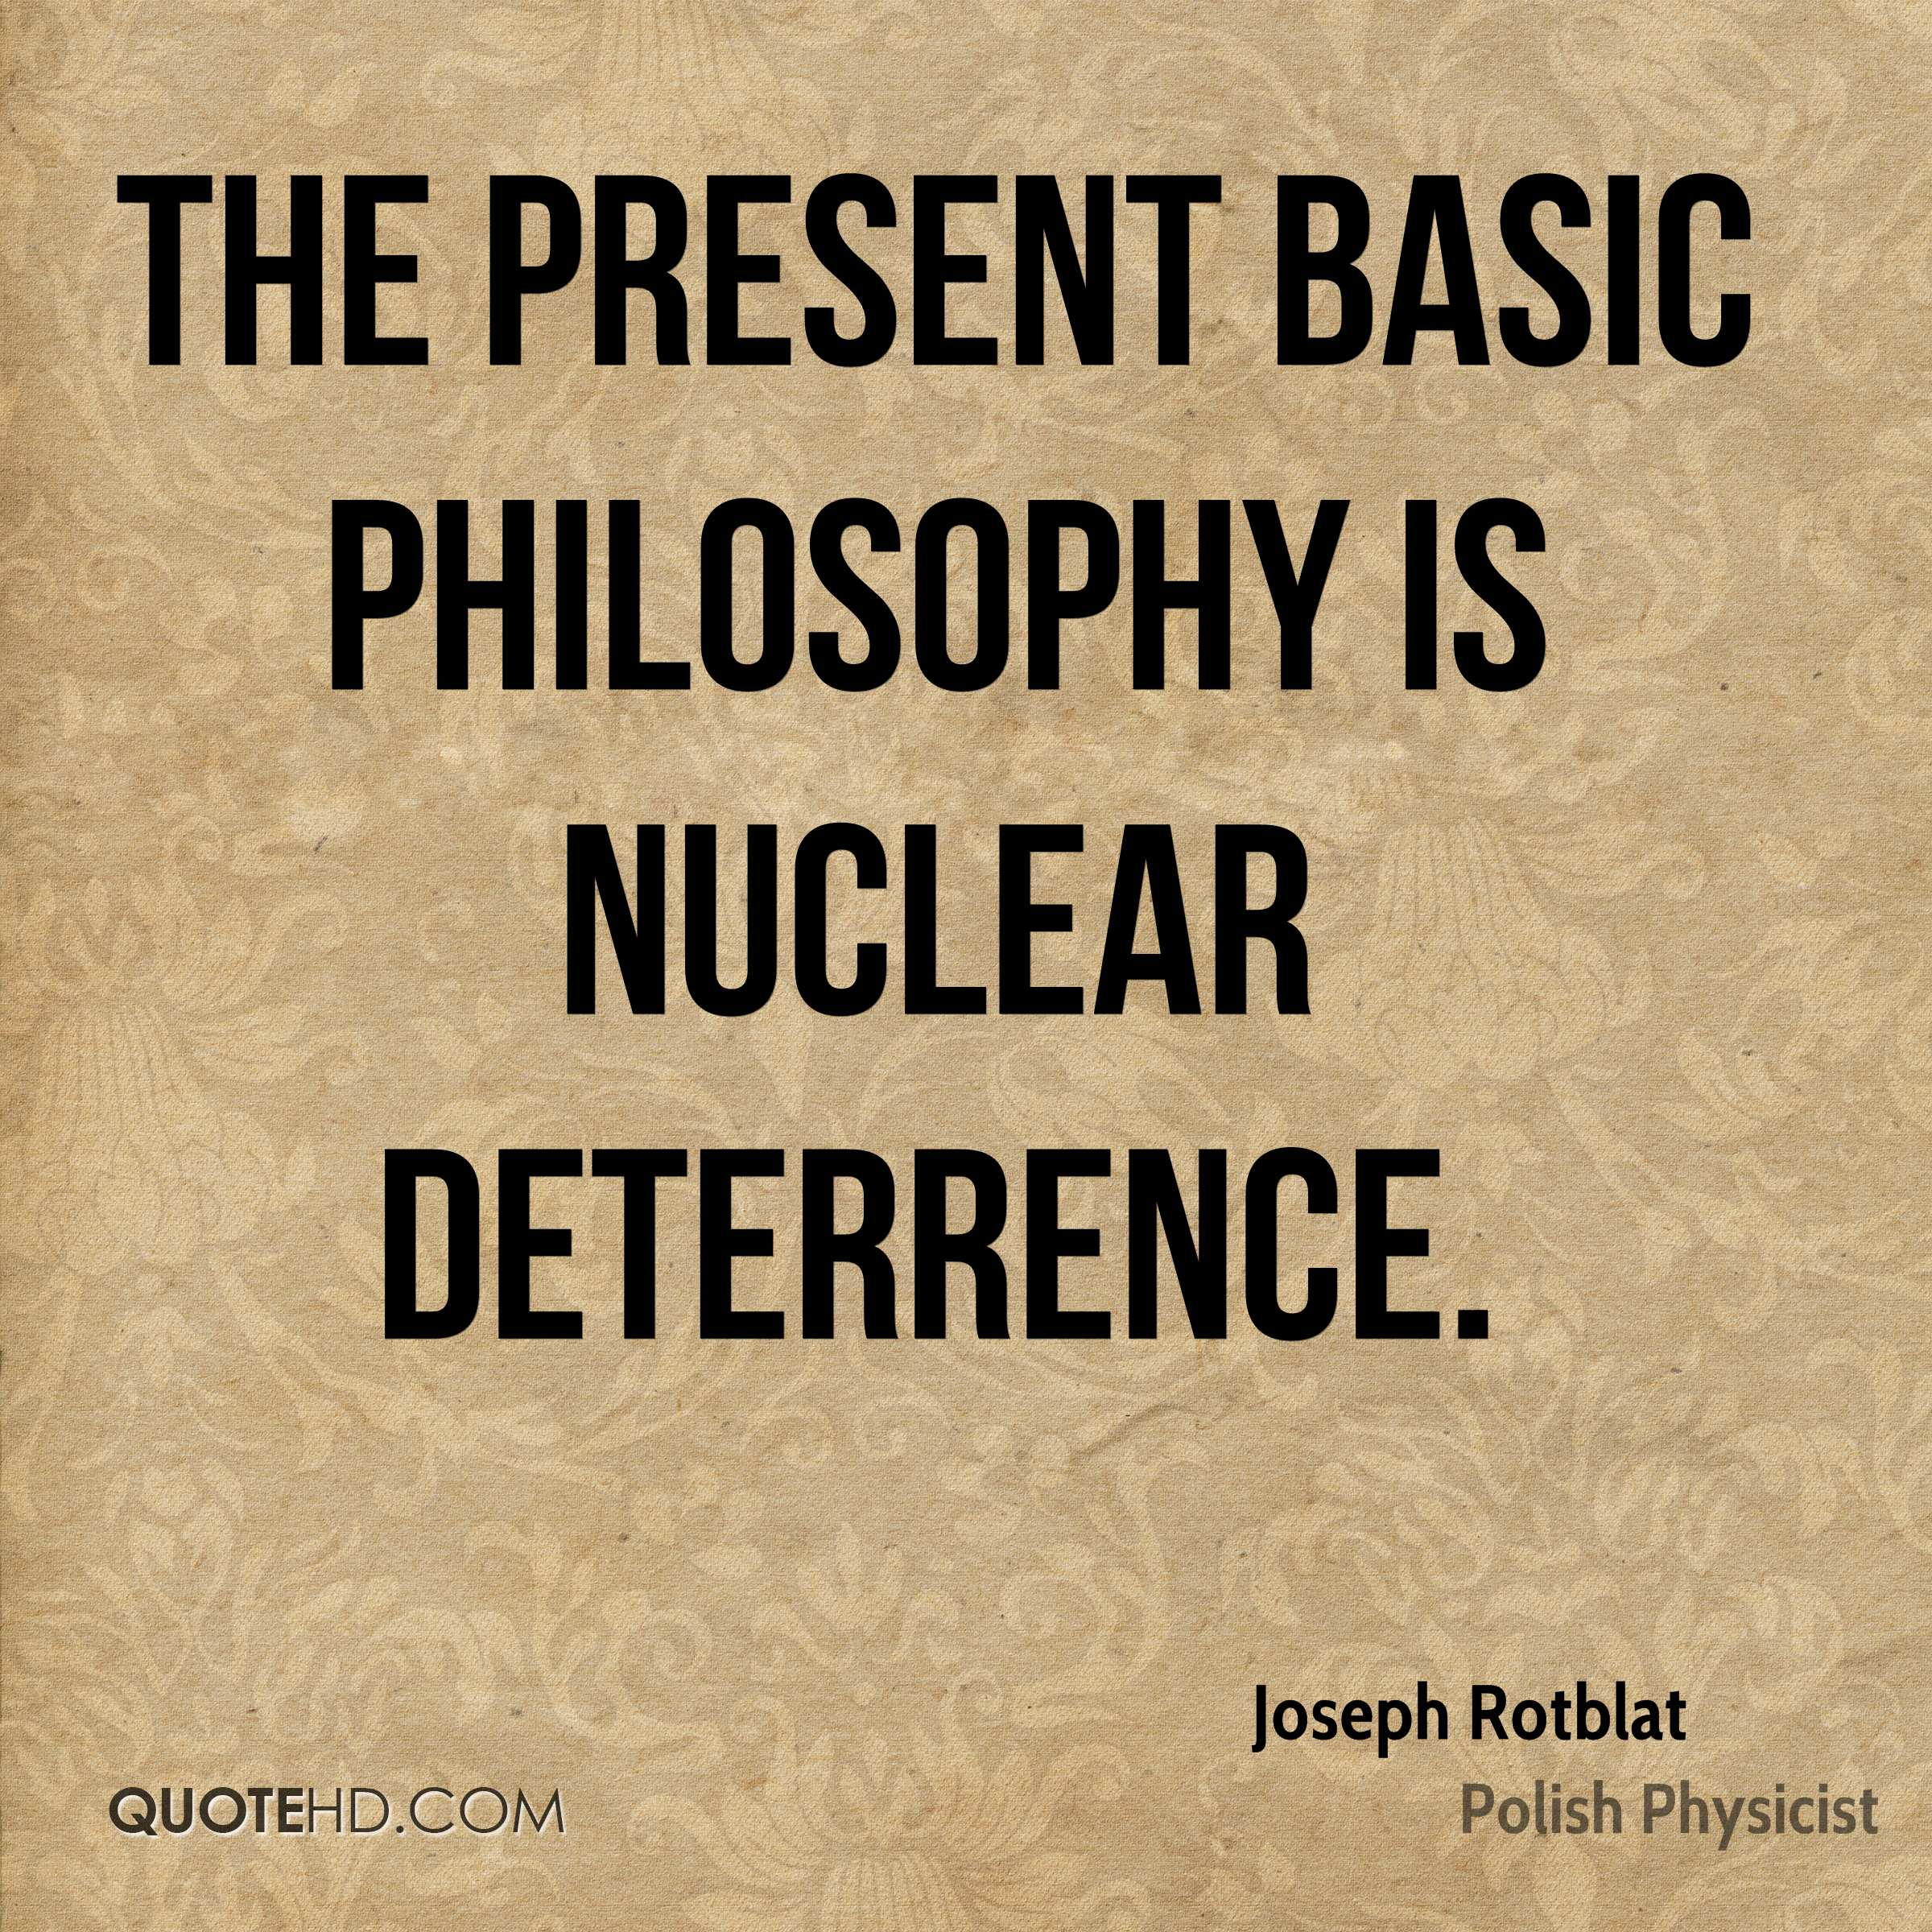 The present basic philosophy is nuclear deterrence.